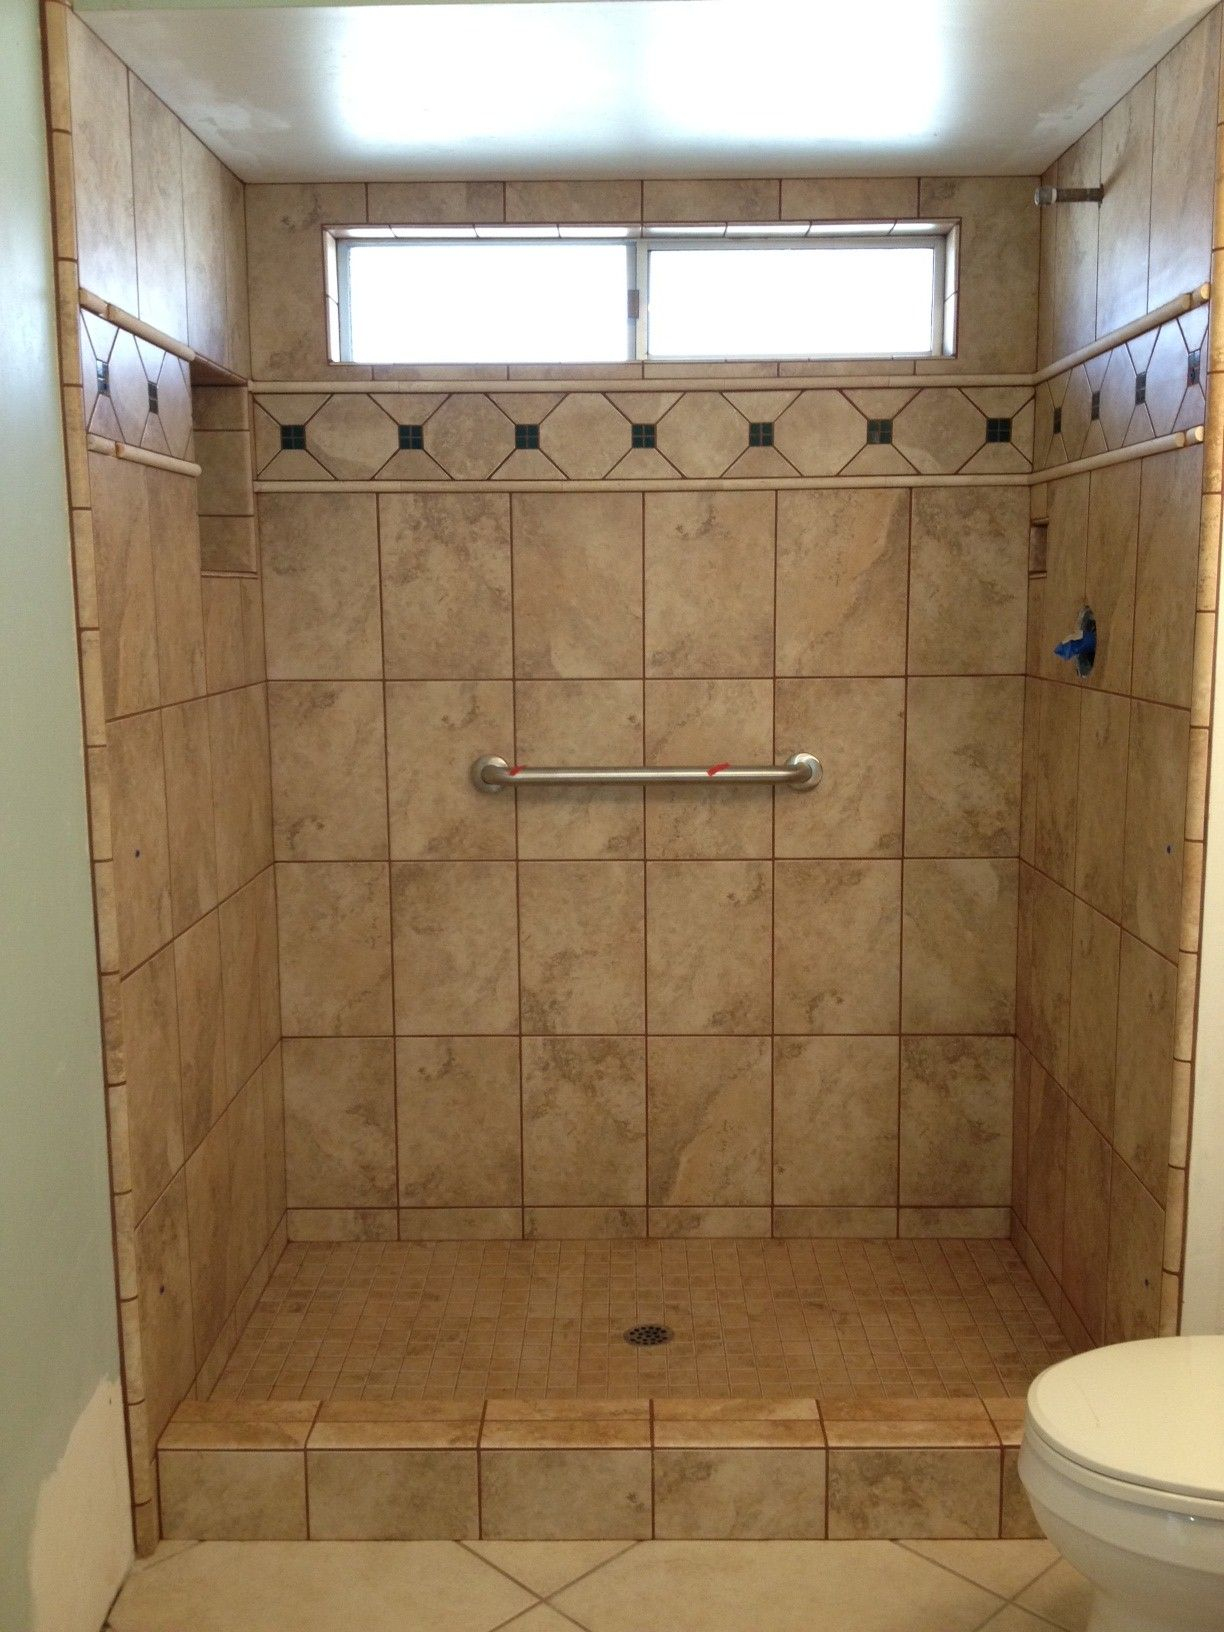 How to build a tiled shower tub - Photos Of Tiled Shower Stalls Photos Gallery Custom Tile Work Co Ceramic